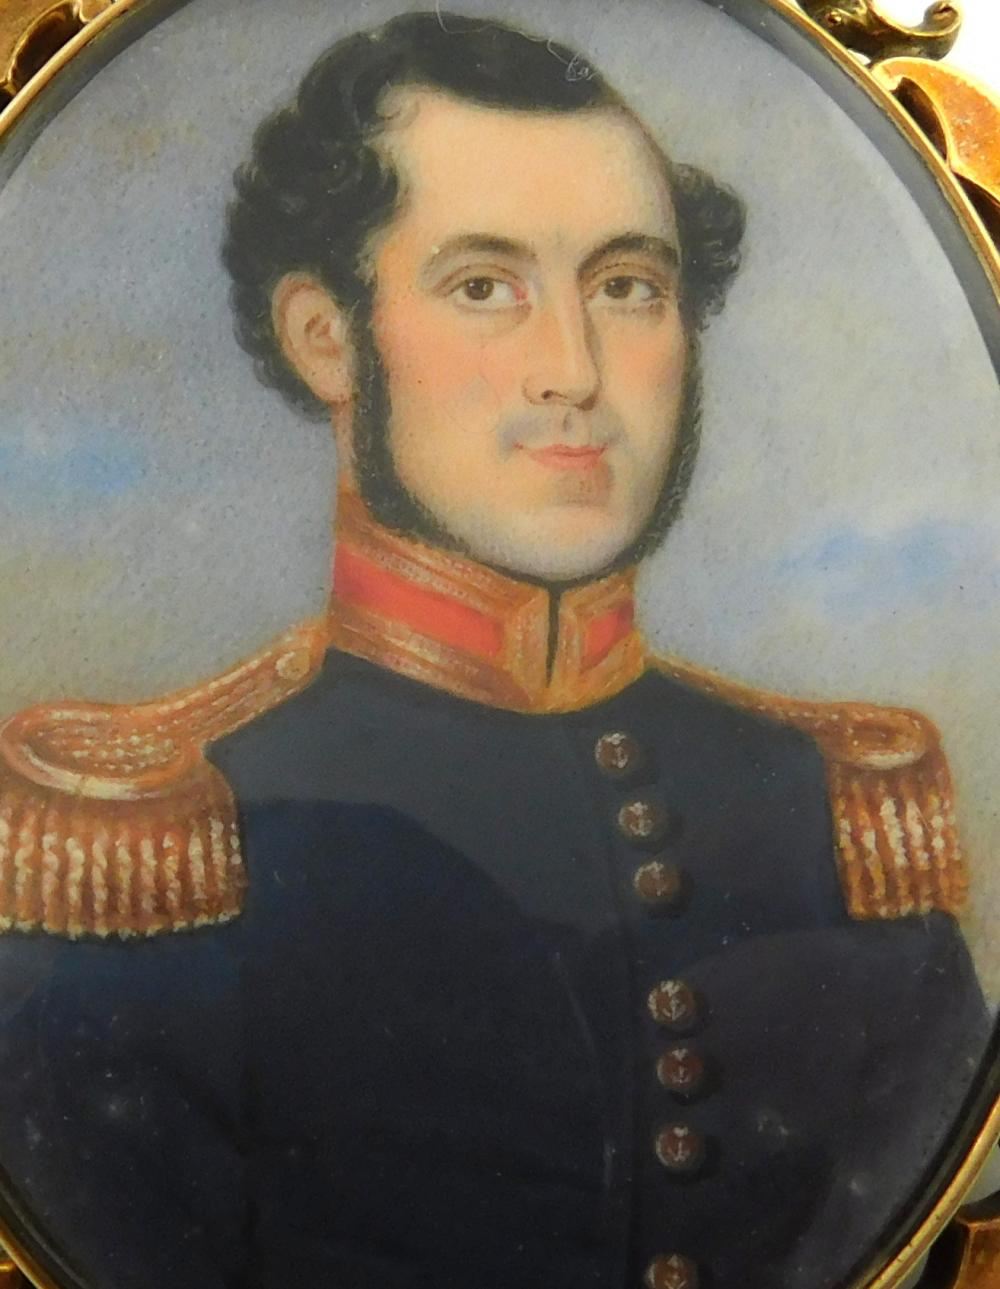 MINIATURES: Military man, most likely depicting a Marine Officer in English Napoleonic War, oval support, young man with dark hair a...